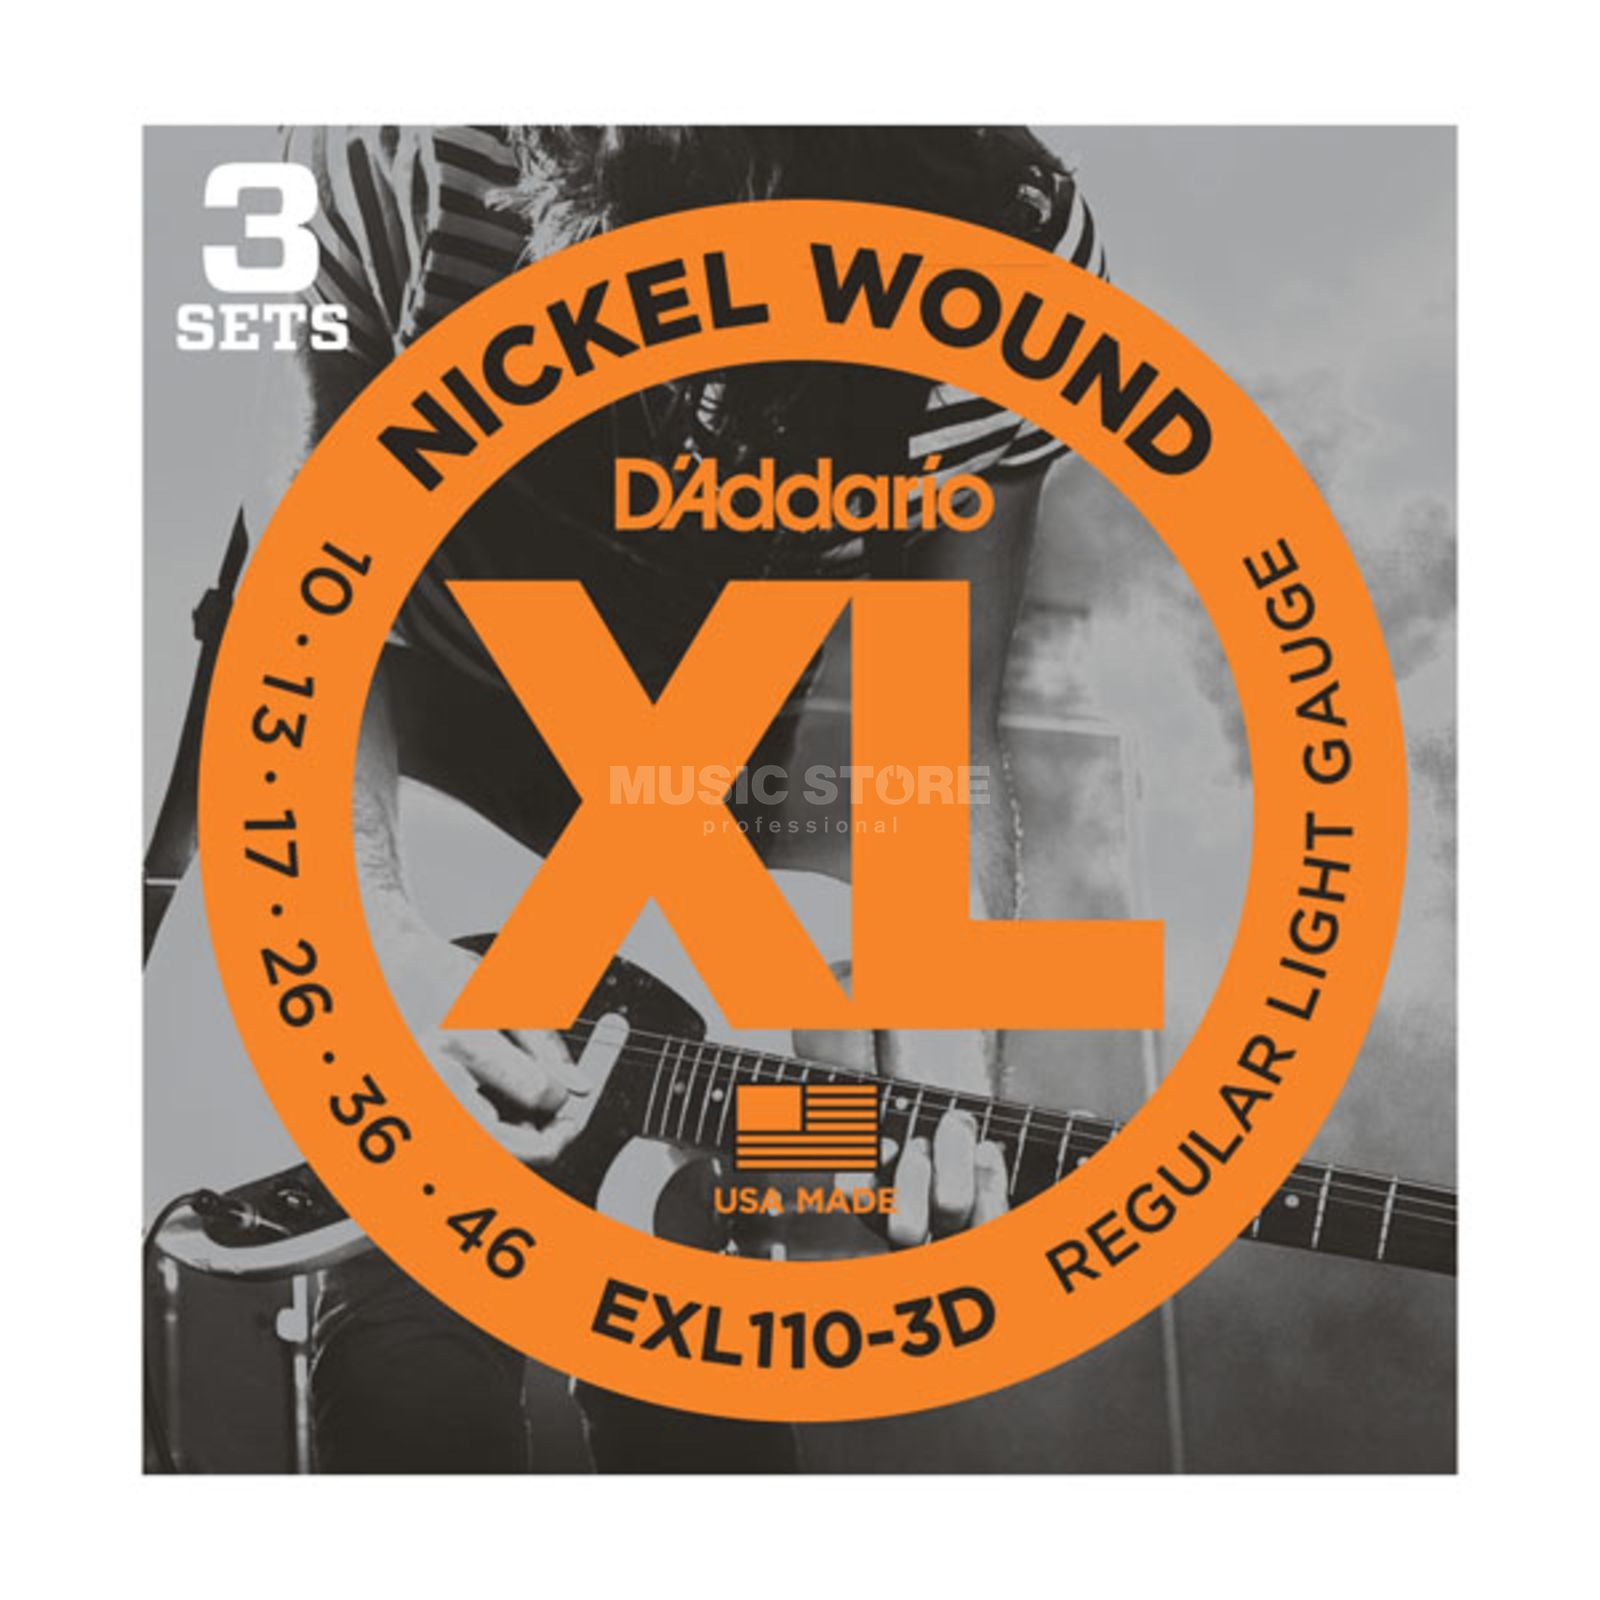 D'Addario E-Guit.Strings 10-46 EXL110-3D Nickel Wound 3 Sets Produktbillede